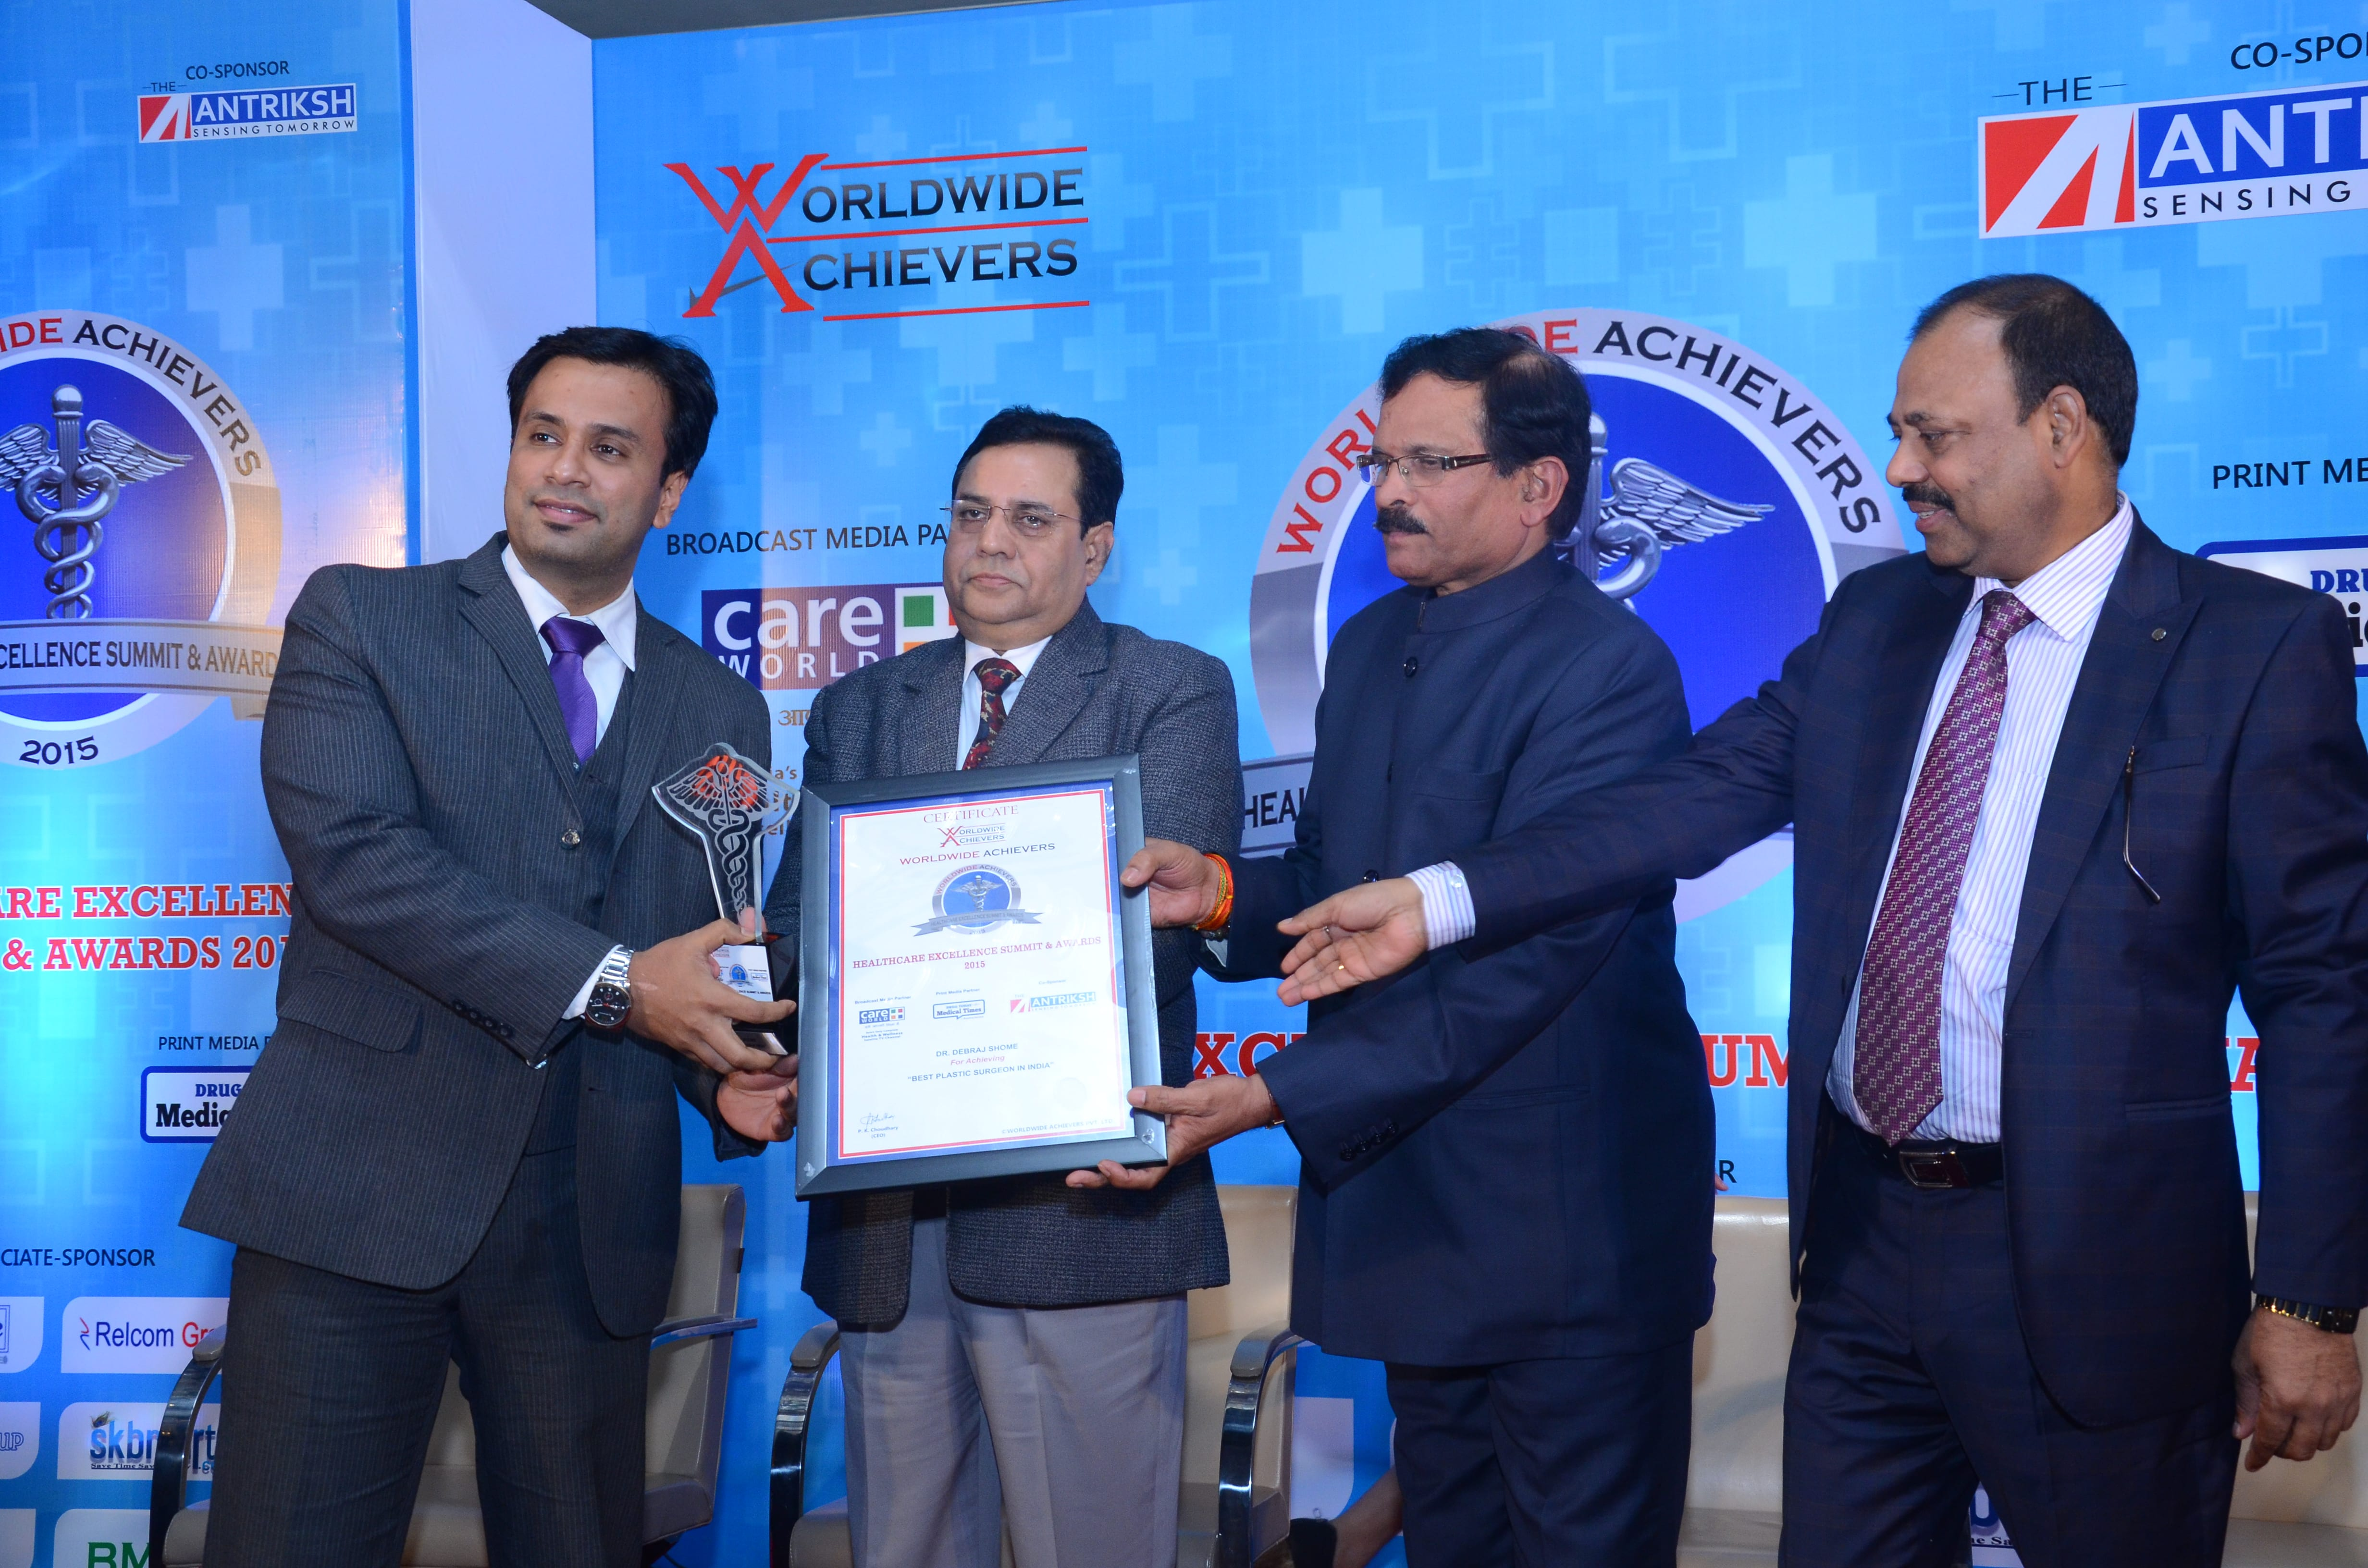 Worldwide Achievers recognizes Dr. Debraj Shome